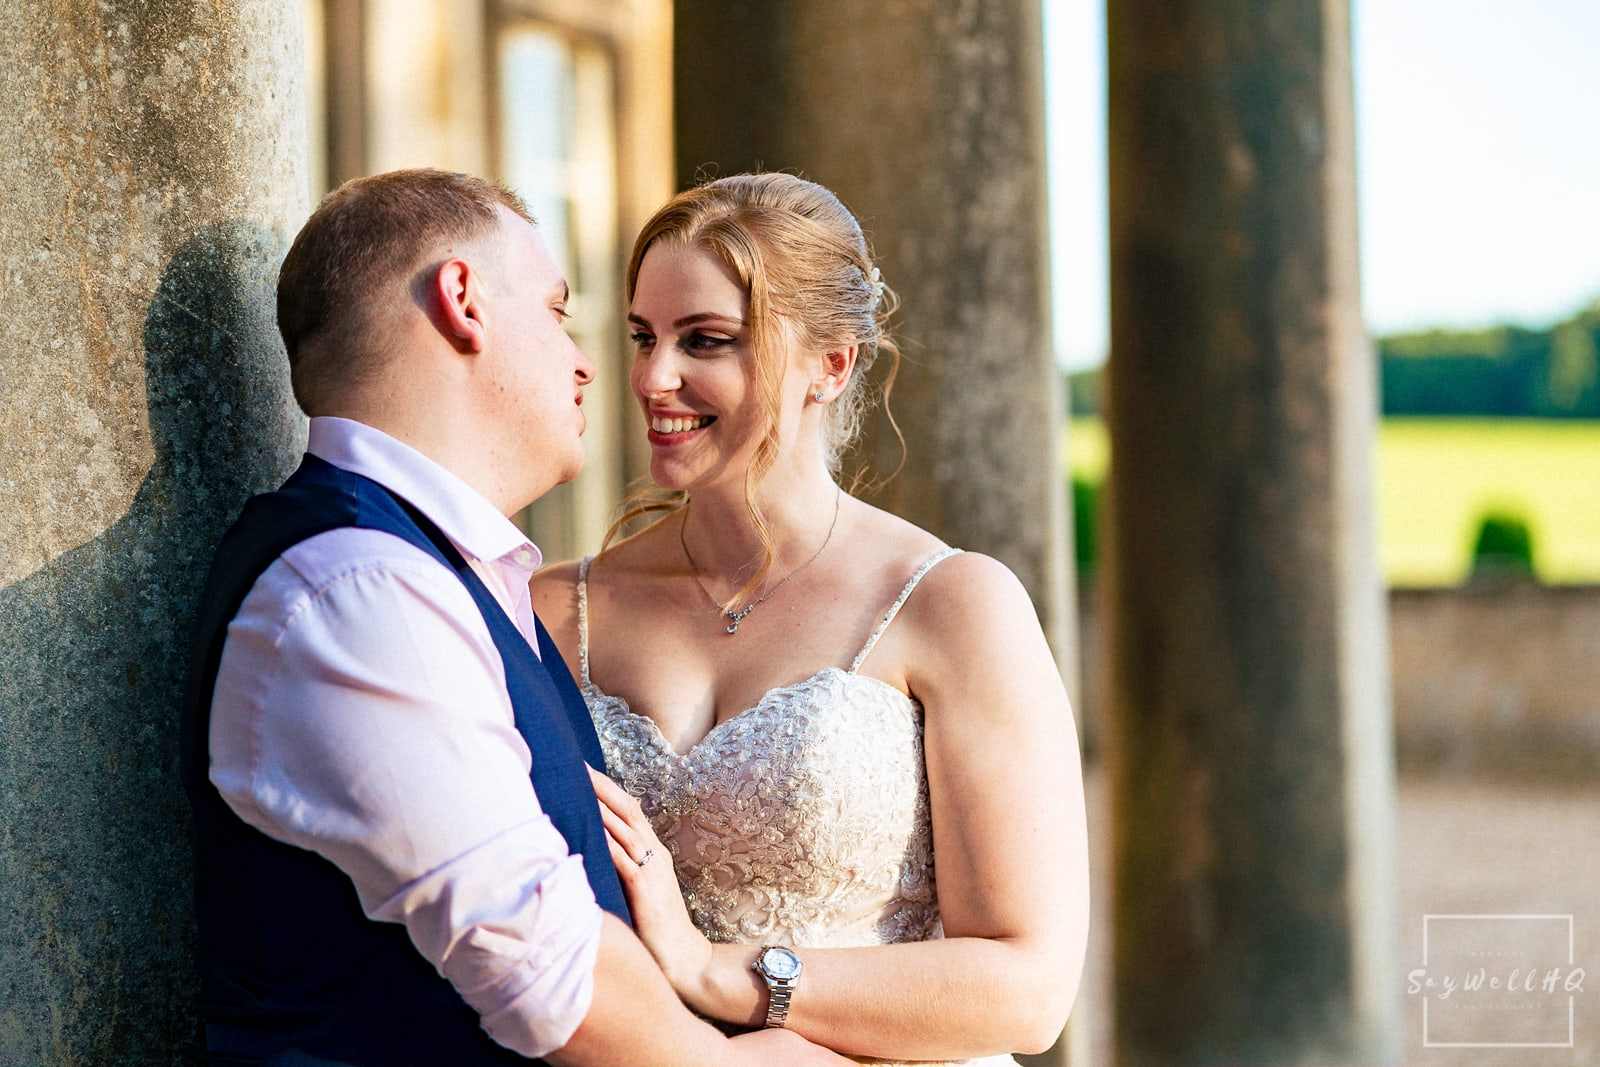 Prestwold Hall Wedding Photography - Bride and Groom portraits and wedding formals at Prestwold Hall